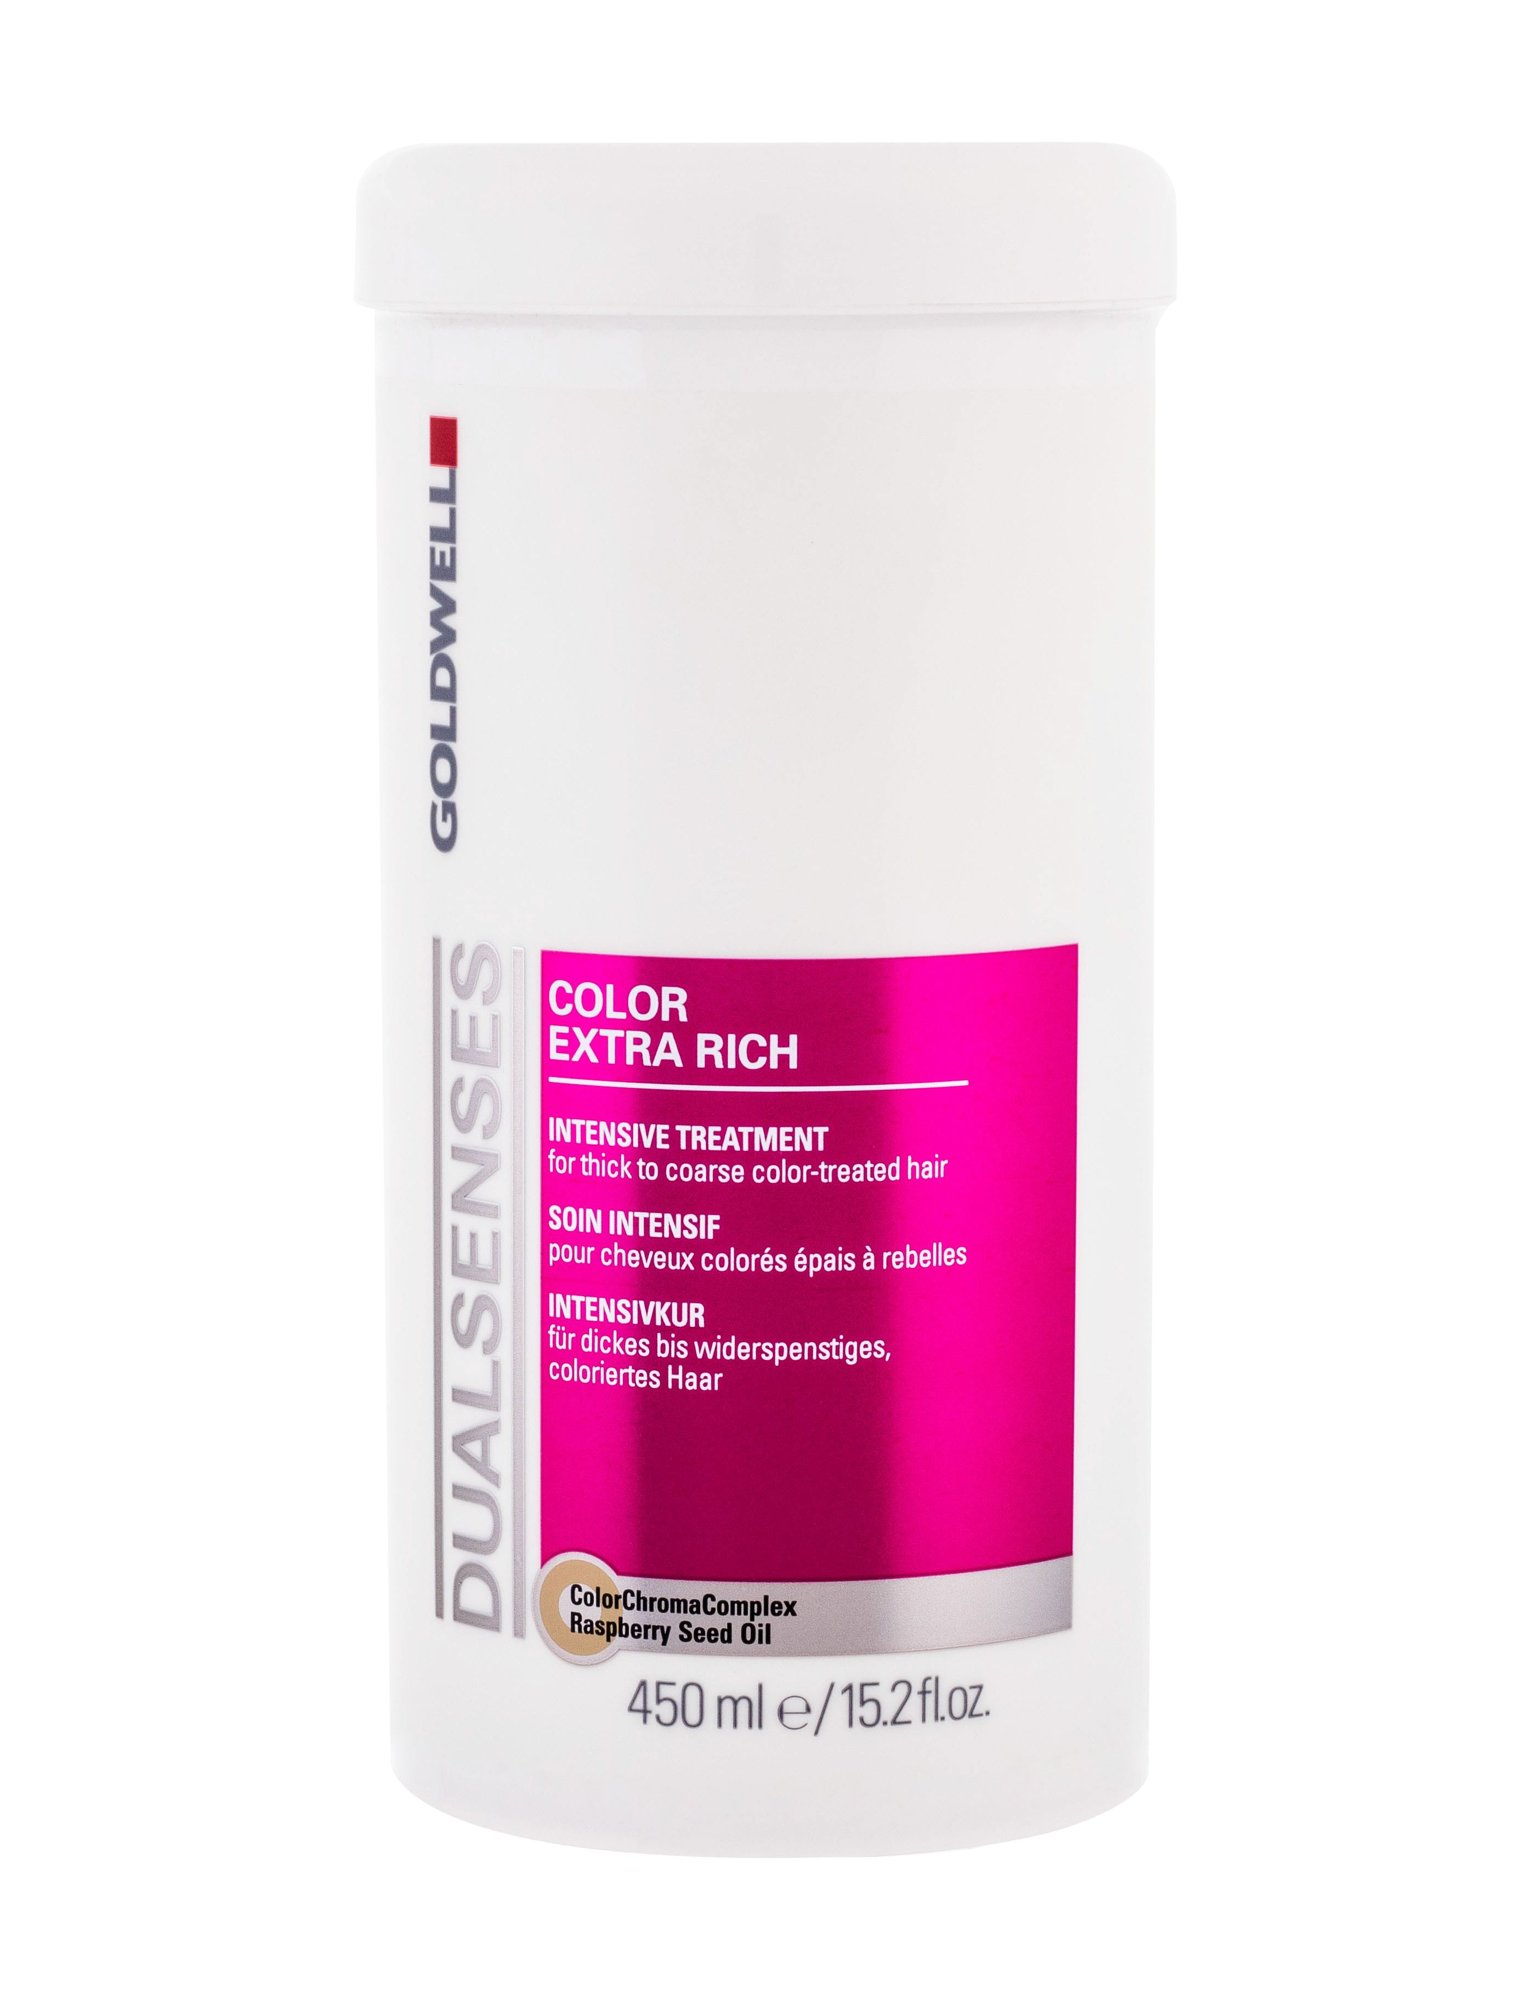 Goldwell Dualsenses Color Extra Rich Hair Mask 450ml